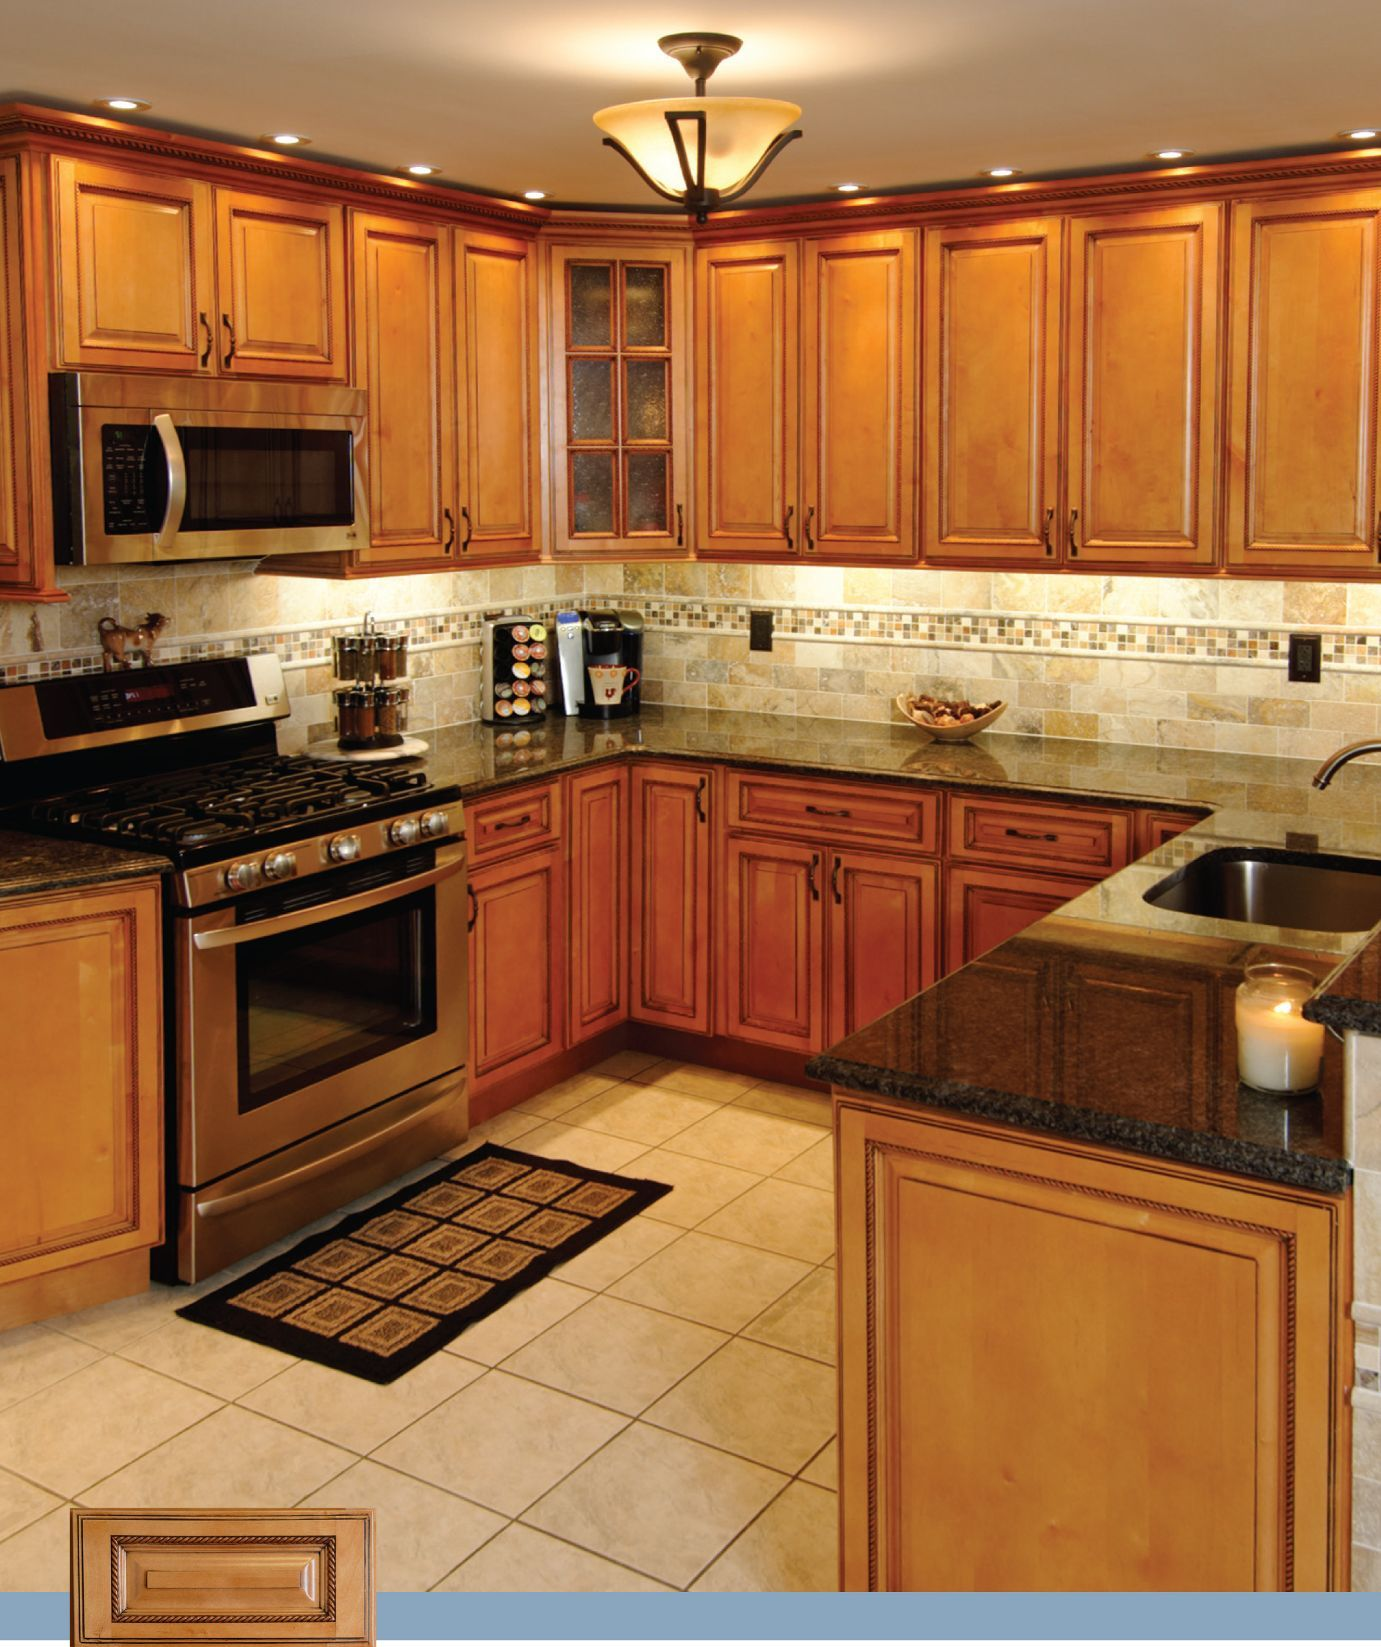 Kitchen Remodeling Cabinets: Light Kitchen Cabinets, Maple